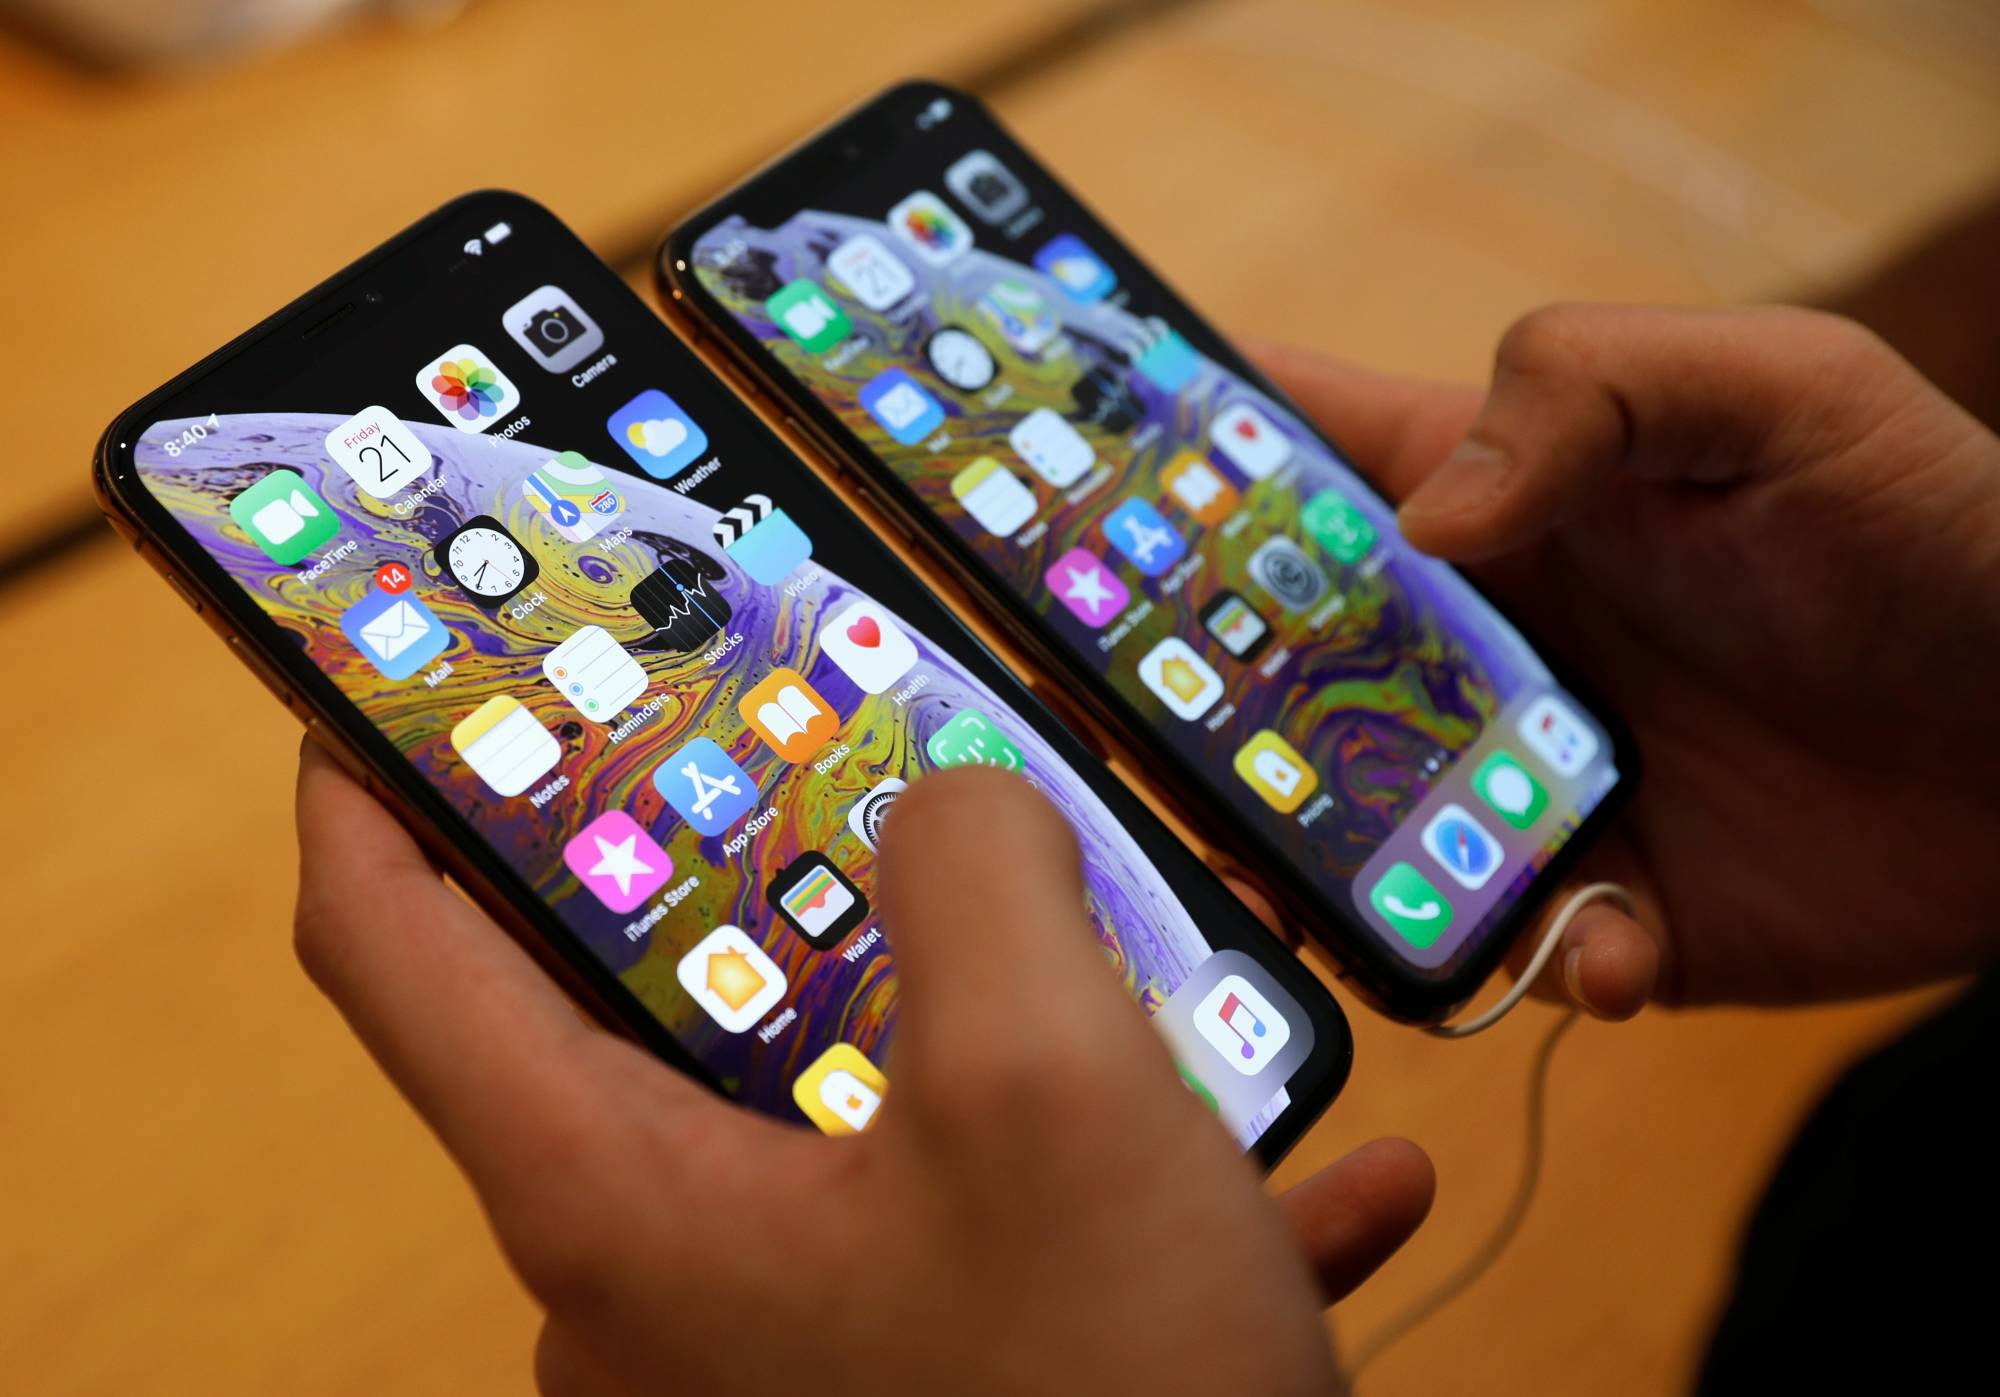 A customer compares the size of the new iPhone XS and iPhone XS Max at the Apple Store in Singapore